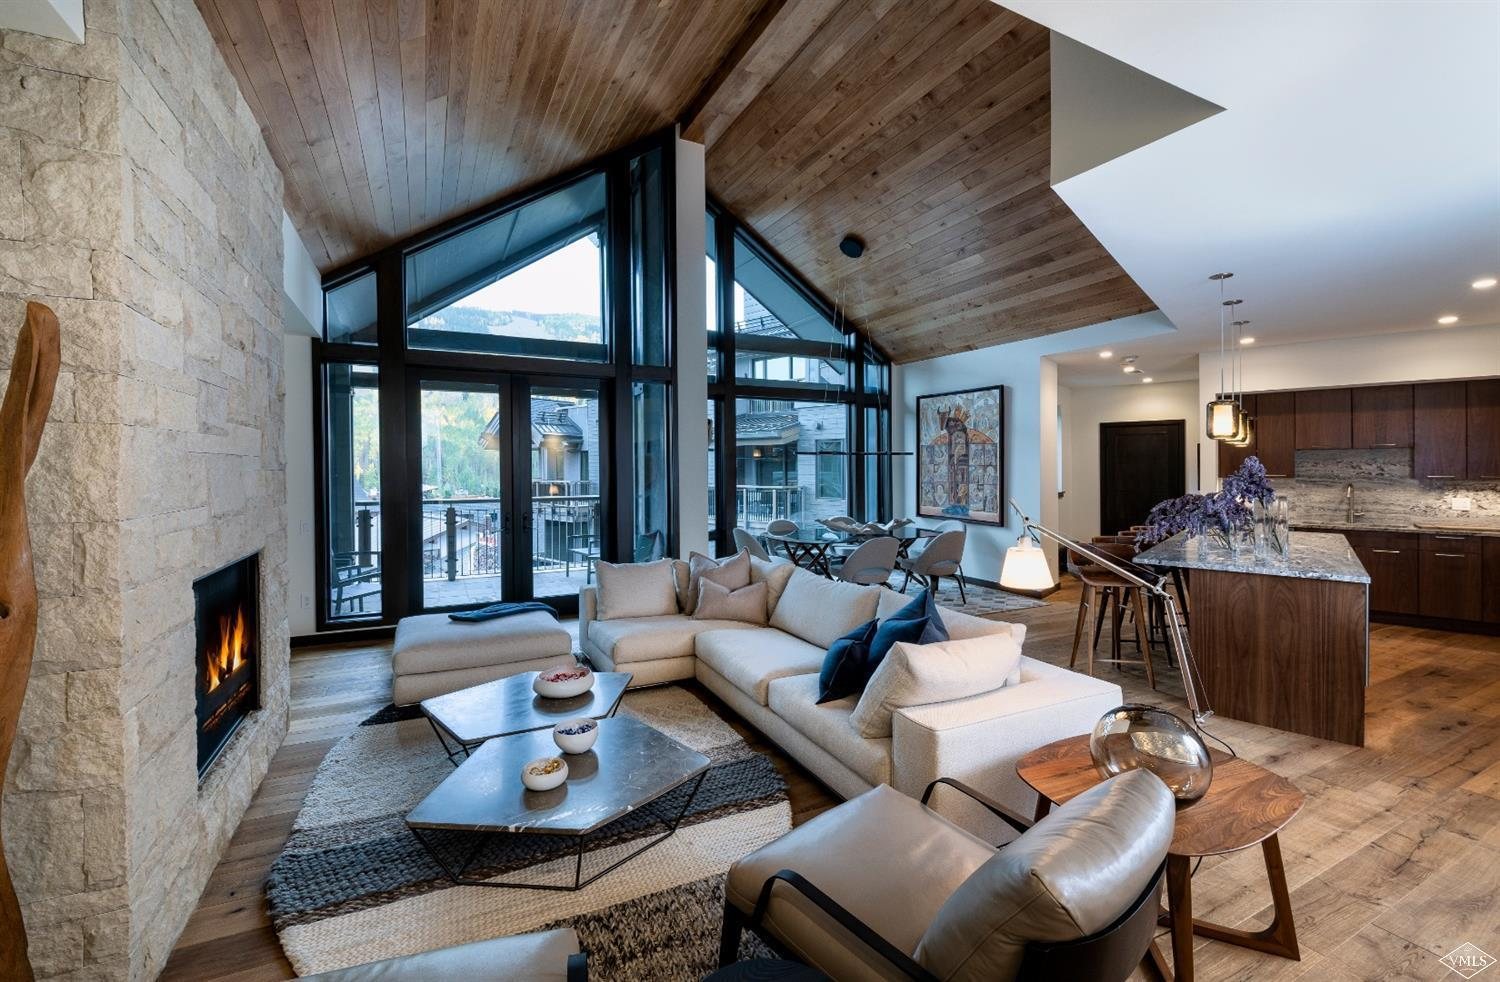 This top-floor penthouse features gourmet kitchen, mountain-contemporary finishes and vaulted ceilings with stunning views of Vail's ski slopes. Enjoy your 861+/- sq.ft. deck with private hot tub and 4 suites with luxury baths. Easy walk to the lift or ride in style on The Lion's electric vehicle powered by the on-site ski valet. Infinite-current lap pool, in and outdoor hot tubs, common recreation rooms and ample owners' parking/storage will set this Vail residence apart from the rest.